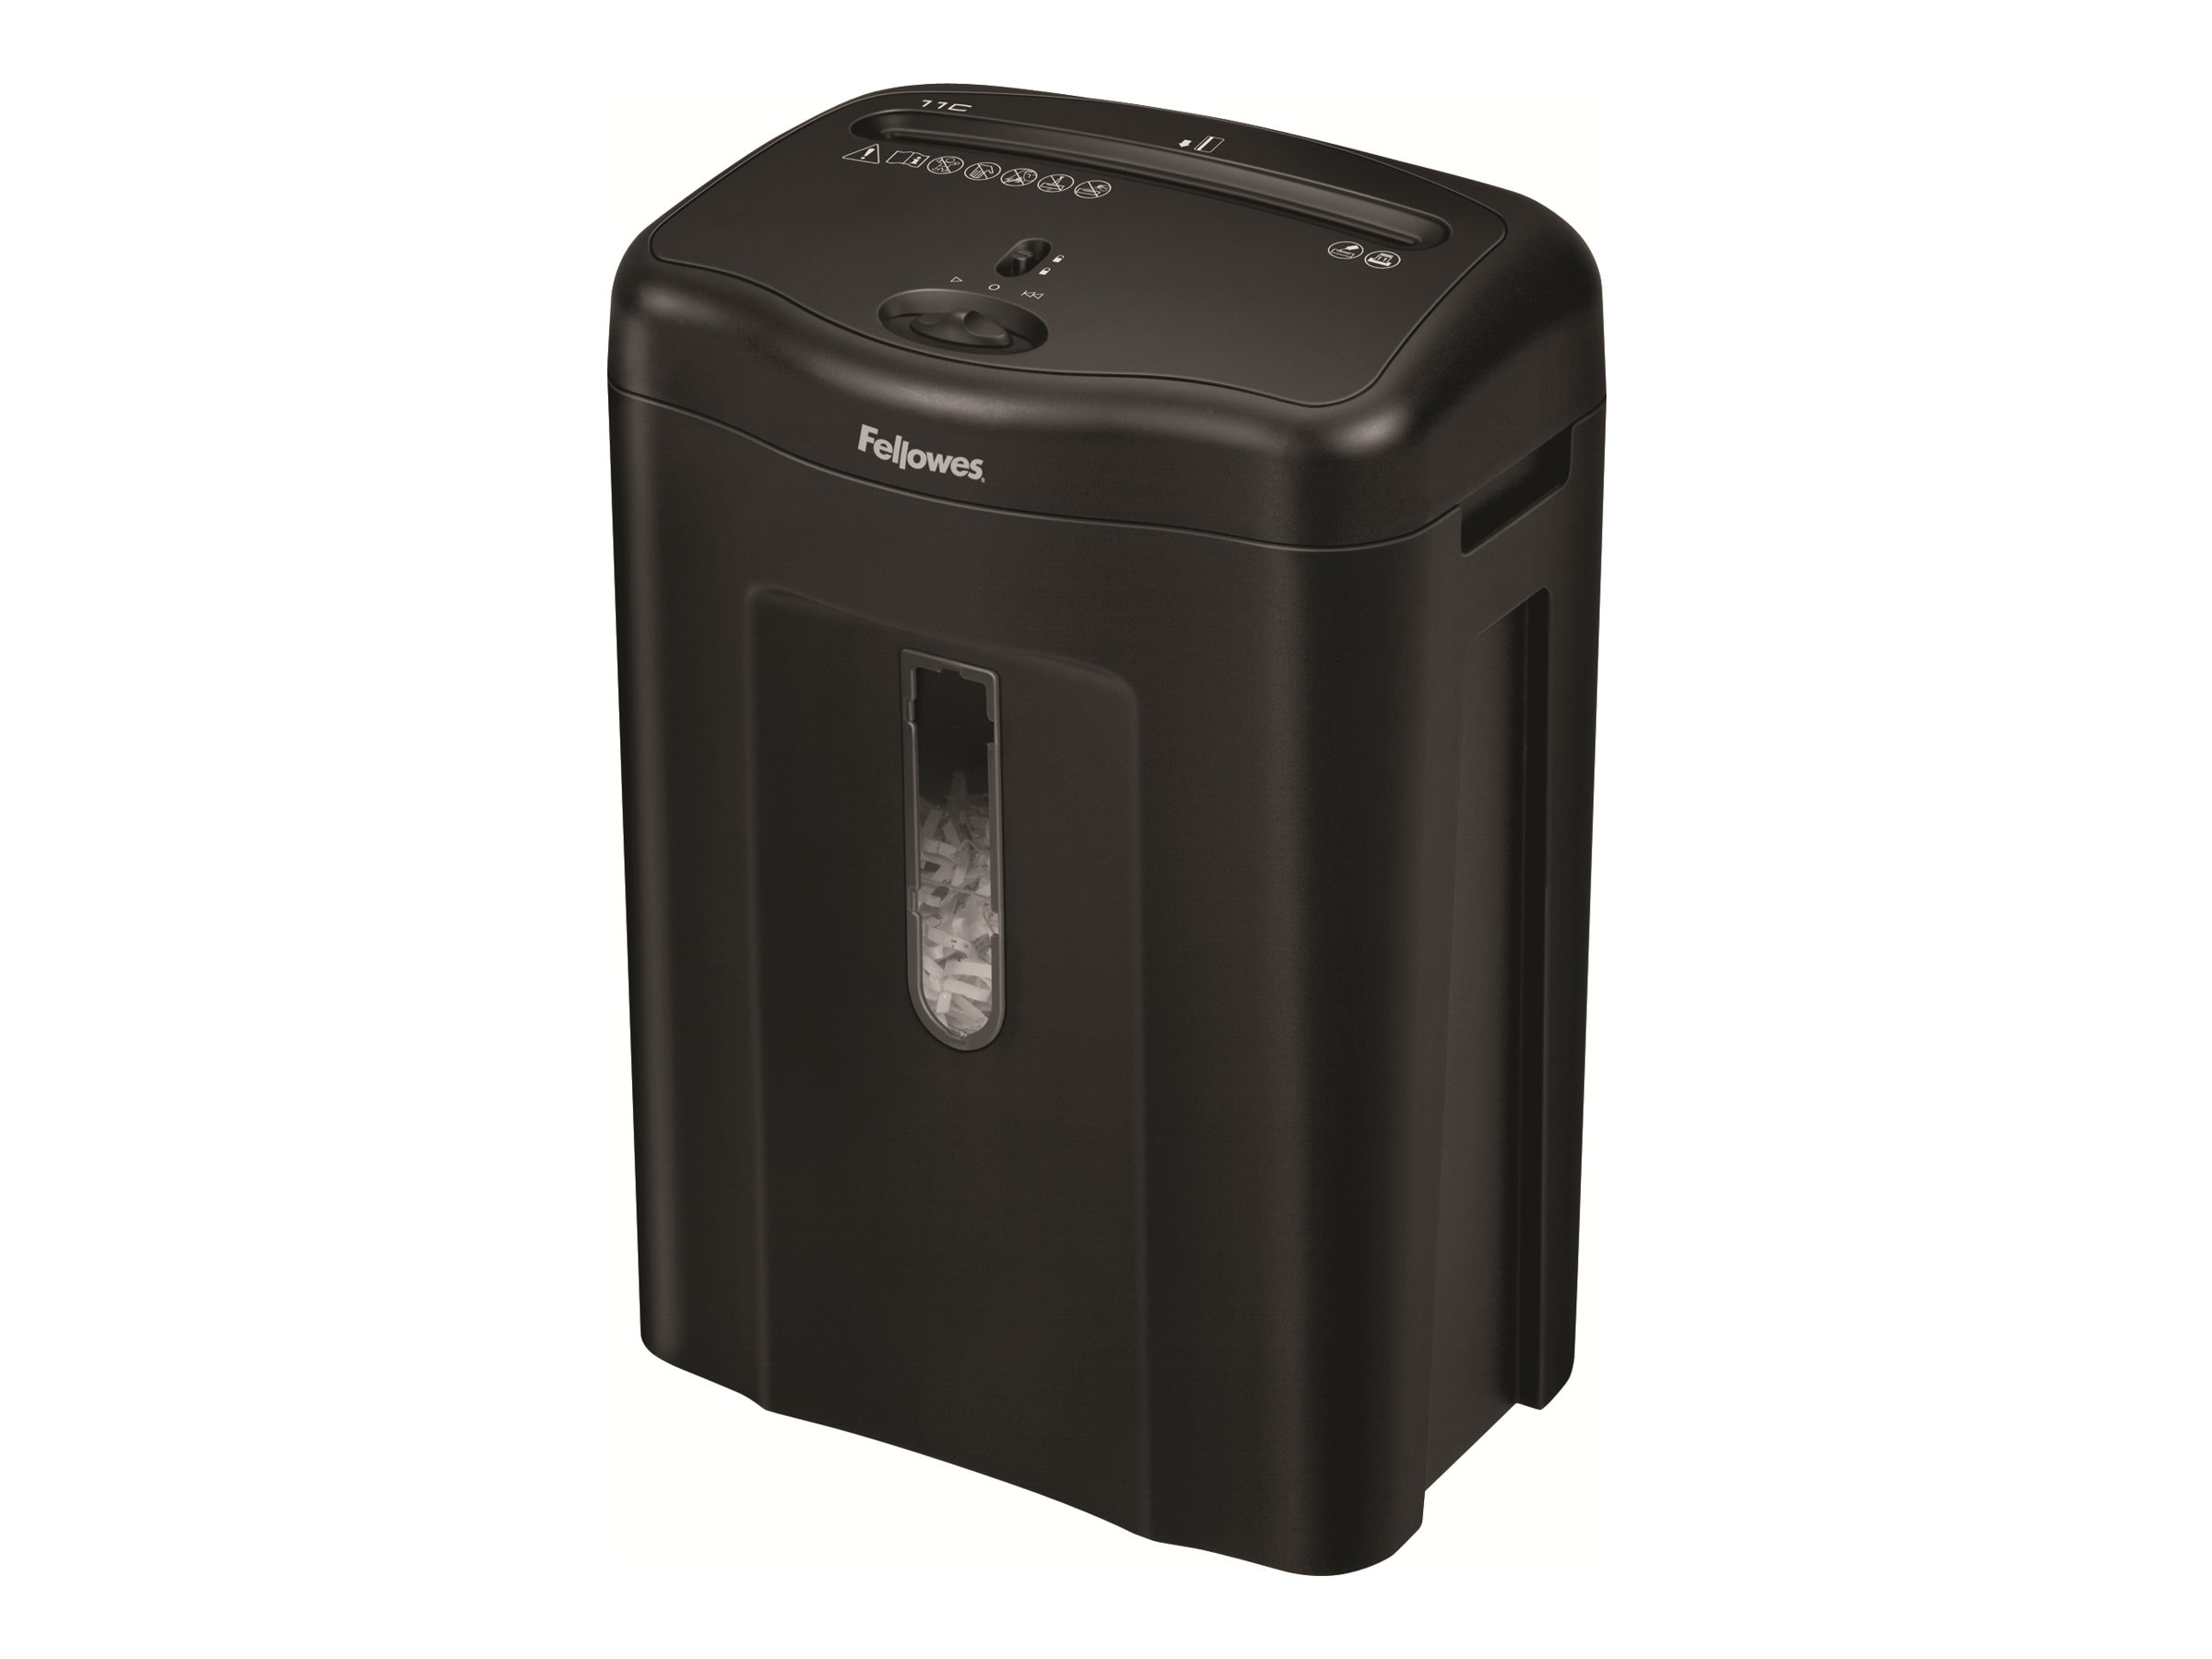 Fellowes 4350001 Image 1